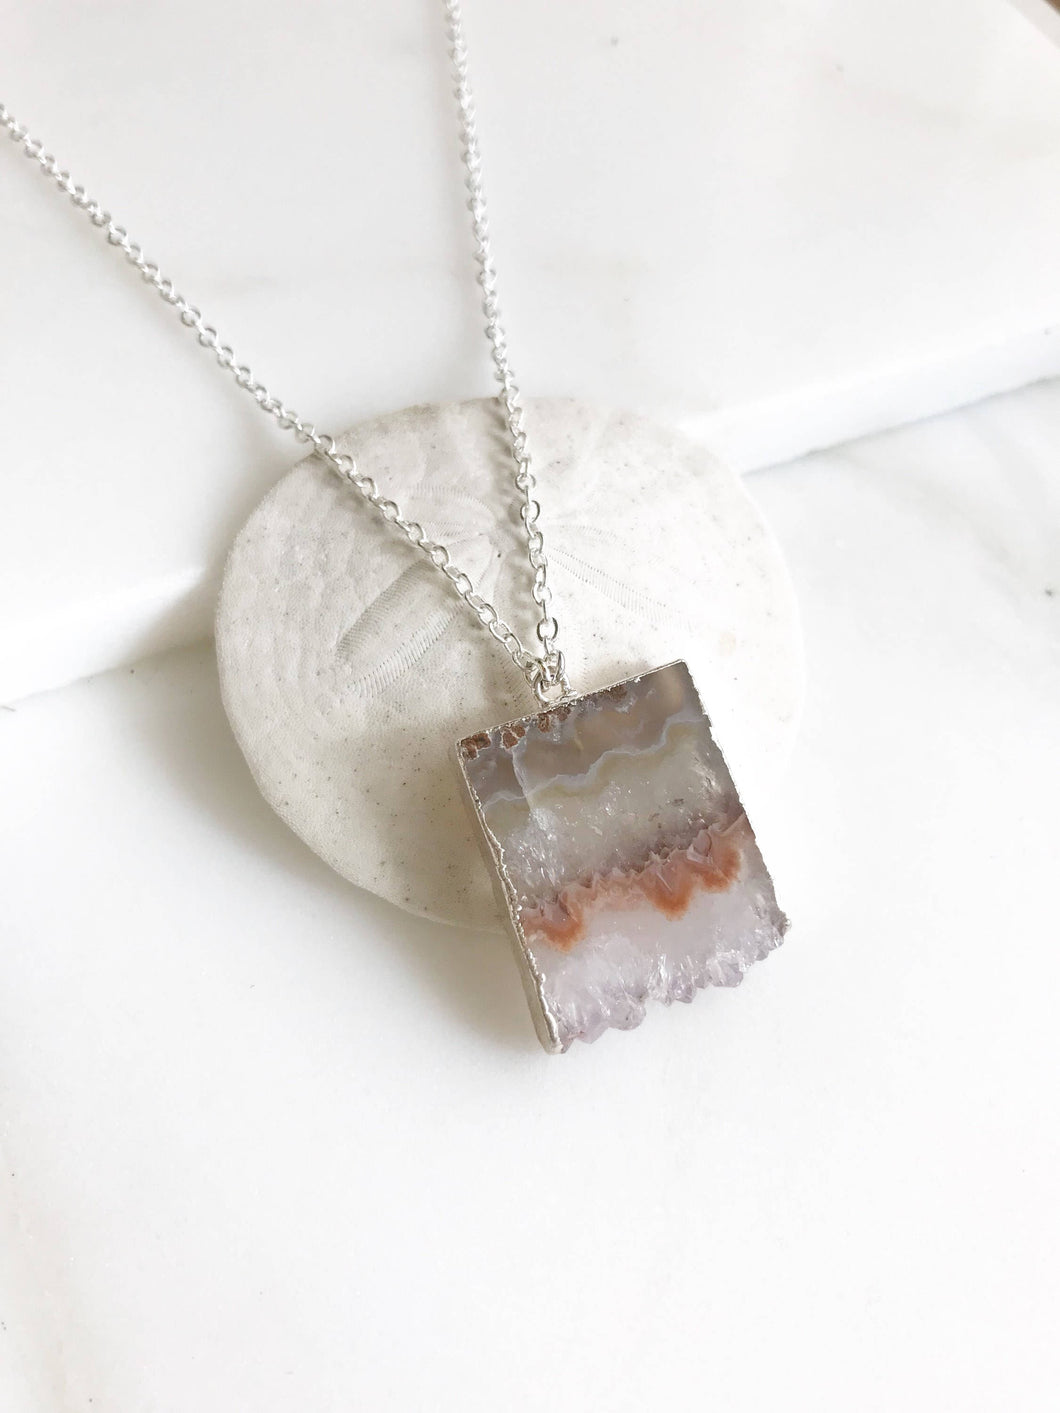 Raw Crystal Necklace in Silver. Geode Necklace. Druzy Jewelry. Natural Crystal Necklace. Amethyst Necklace. Simple Geode Necklace. Gift.